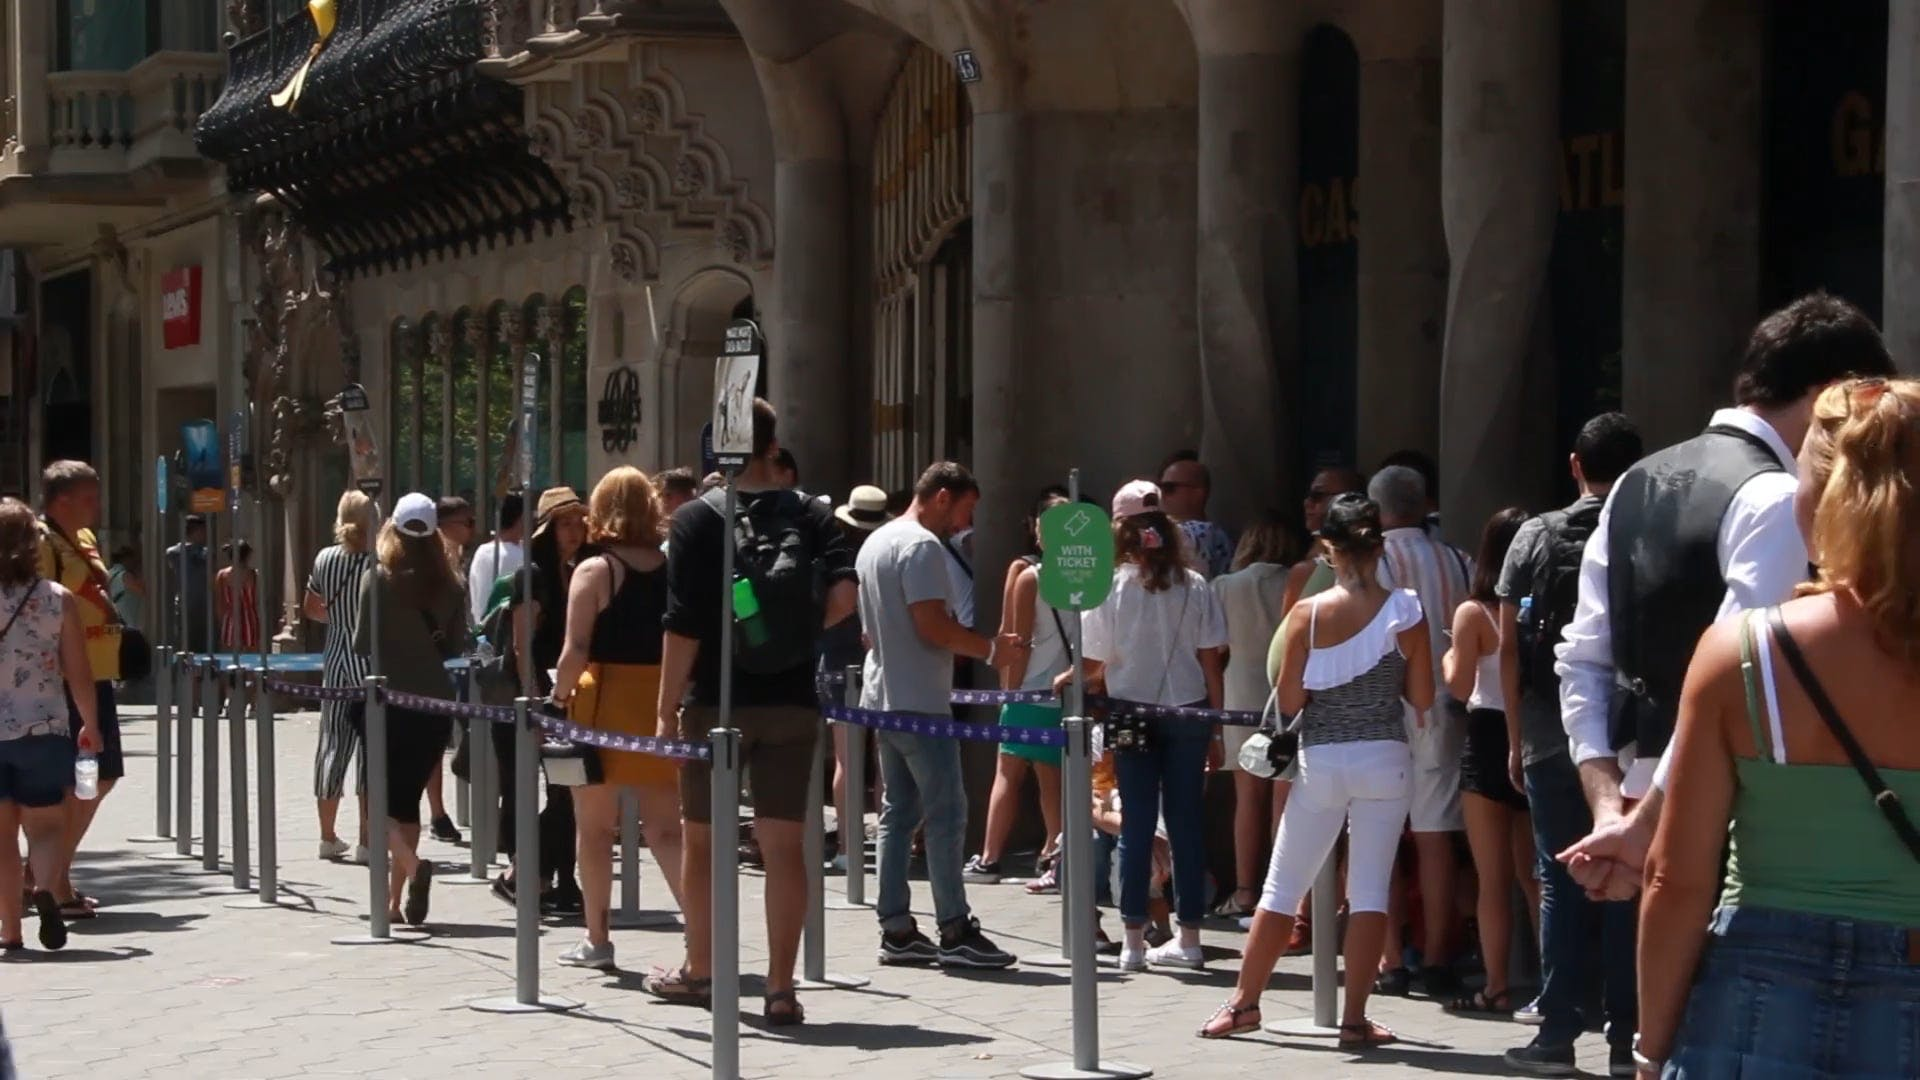 People Waiting Outside A Building